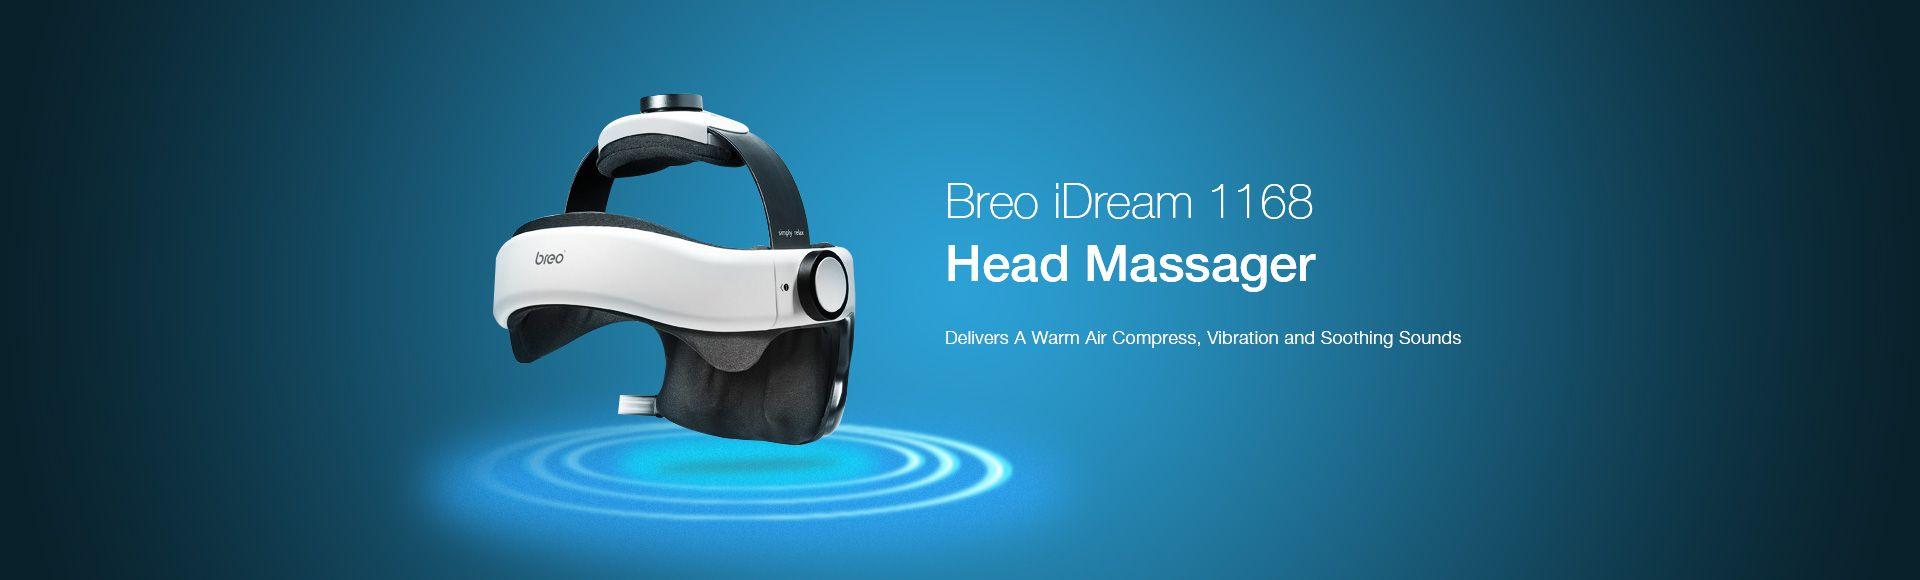 Breo iDream 1168 Head Massager - Delivers a warm aire compress, vibration and soothing sounds